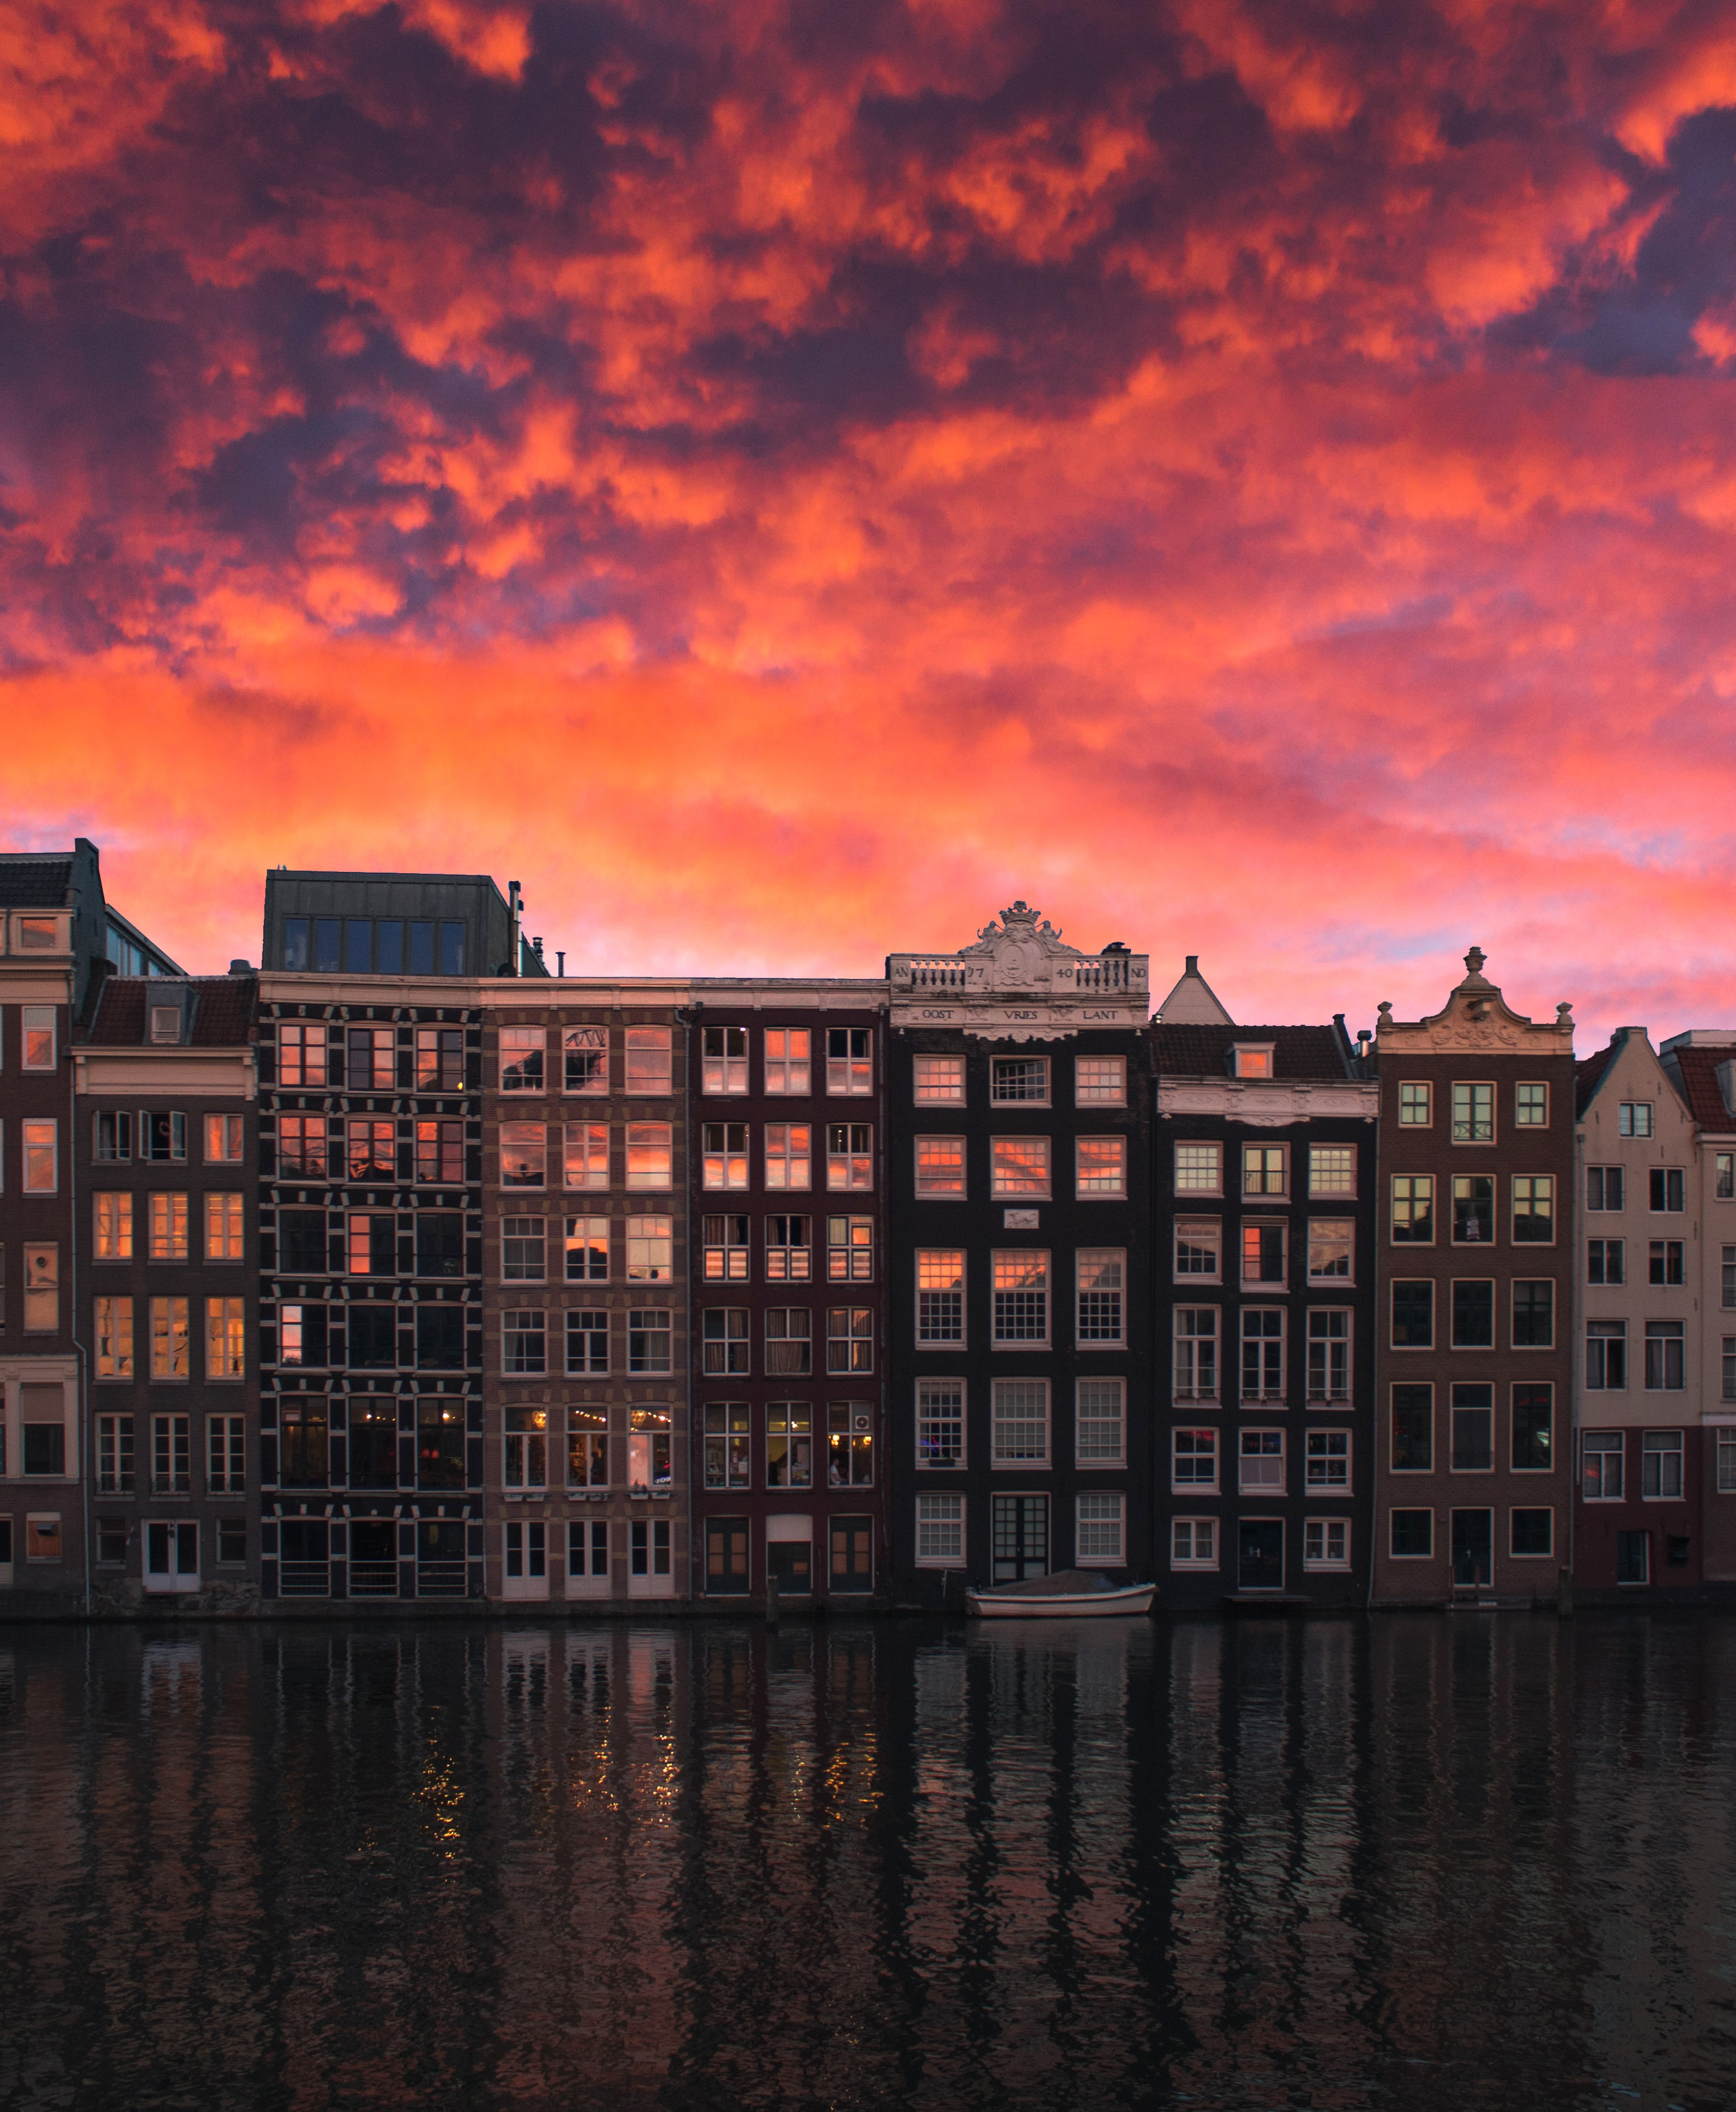 row of buildings near body of water during golden hour